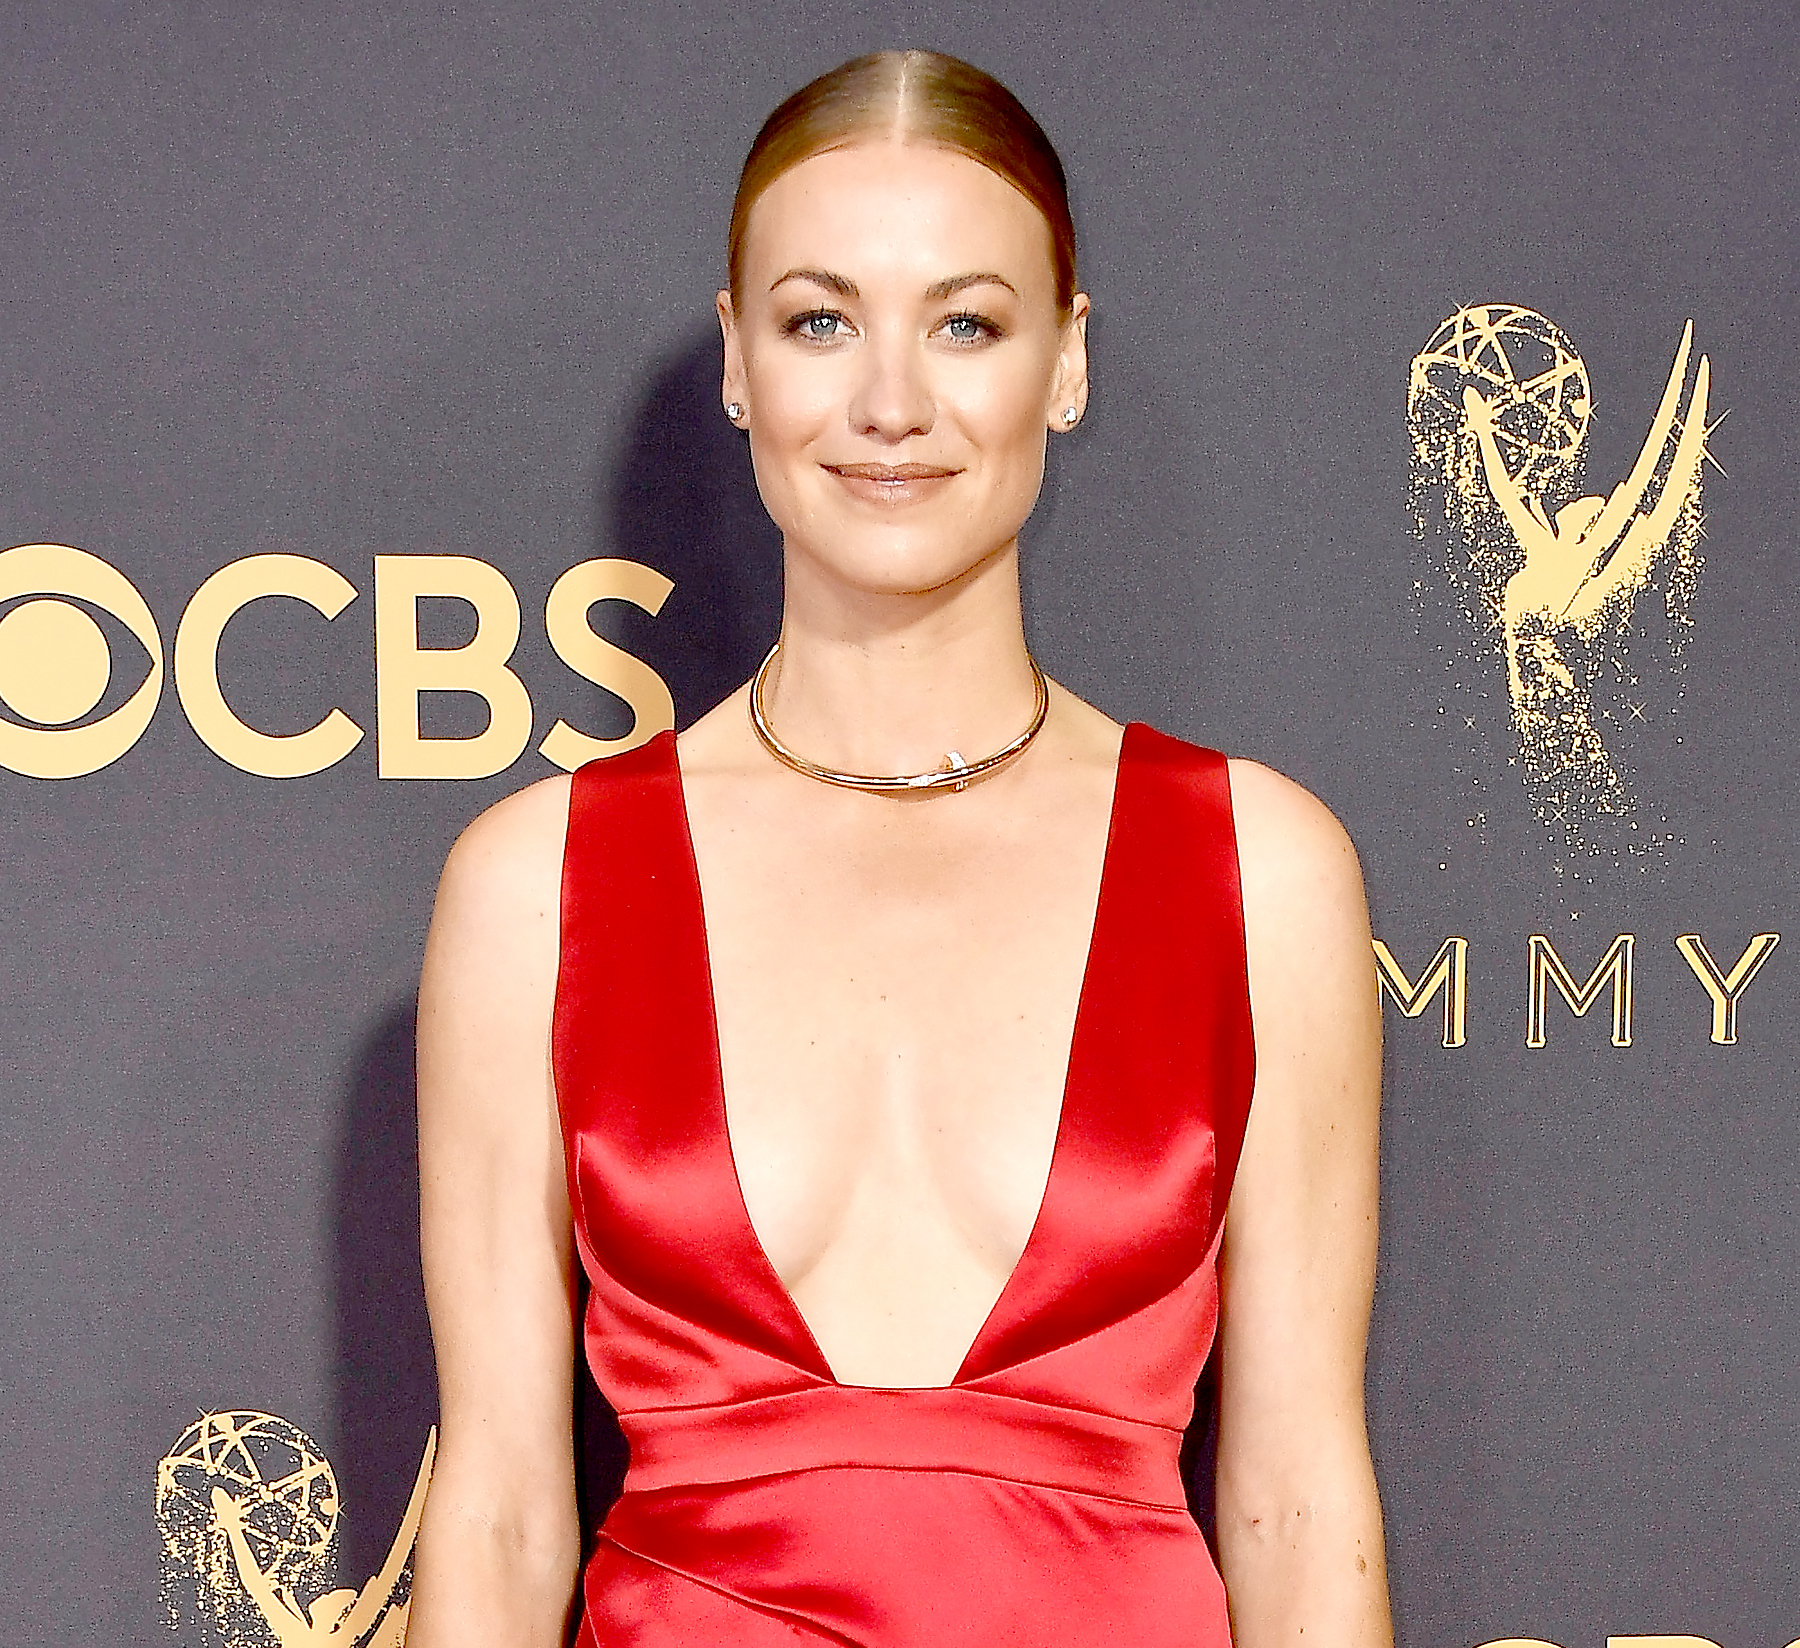 Yvonne Strahovski attends the 69th Annual Primetime Emmy Awards at Microsoft Theater on September 17, 2017 in Los Angeles, California.